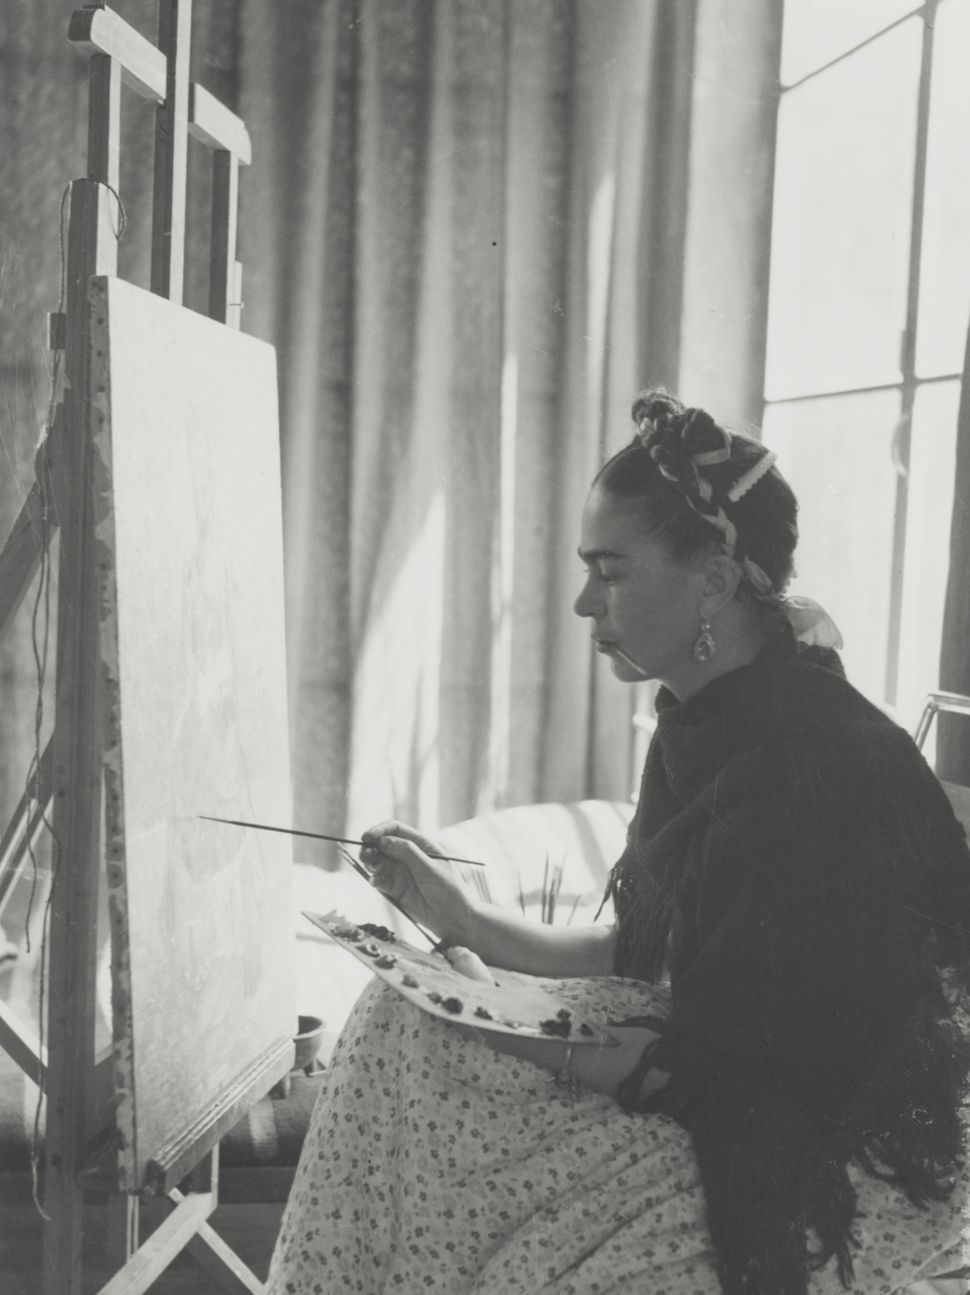 Hector Garcia image, Portrait of Frida Kahlo, in front of her painting of the Earth Goddess Frida Diego c1940 gelatin silver